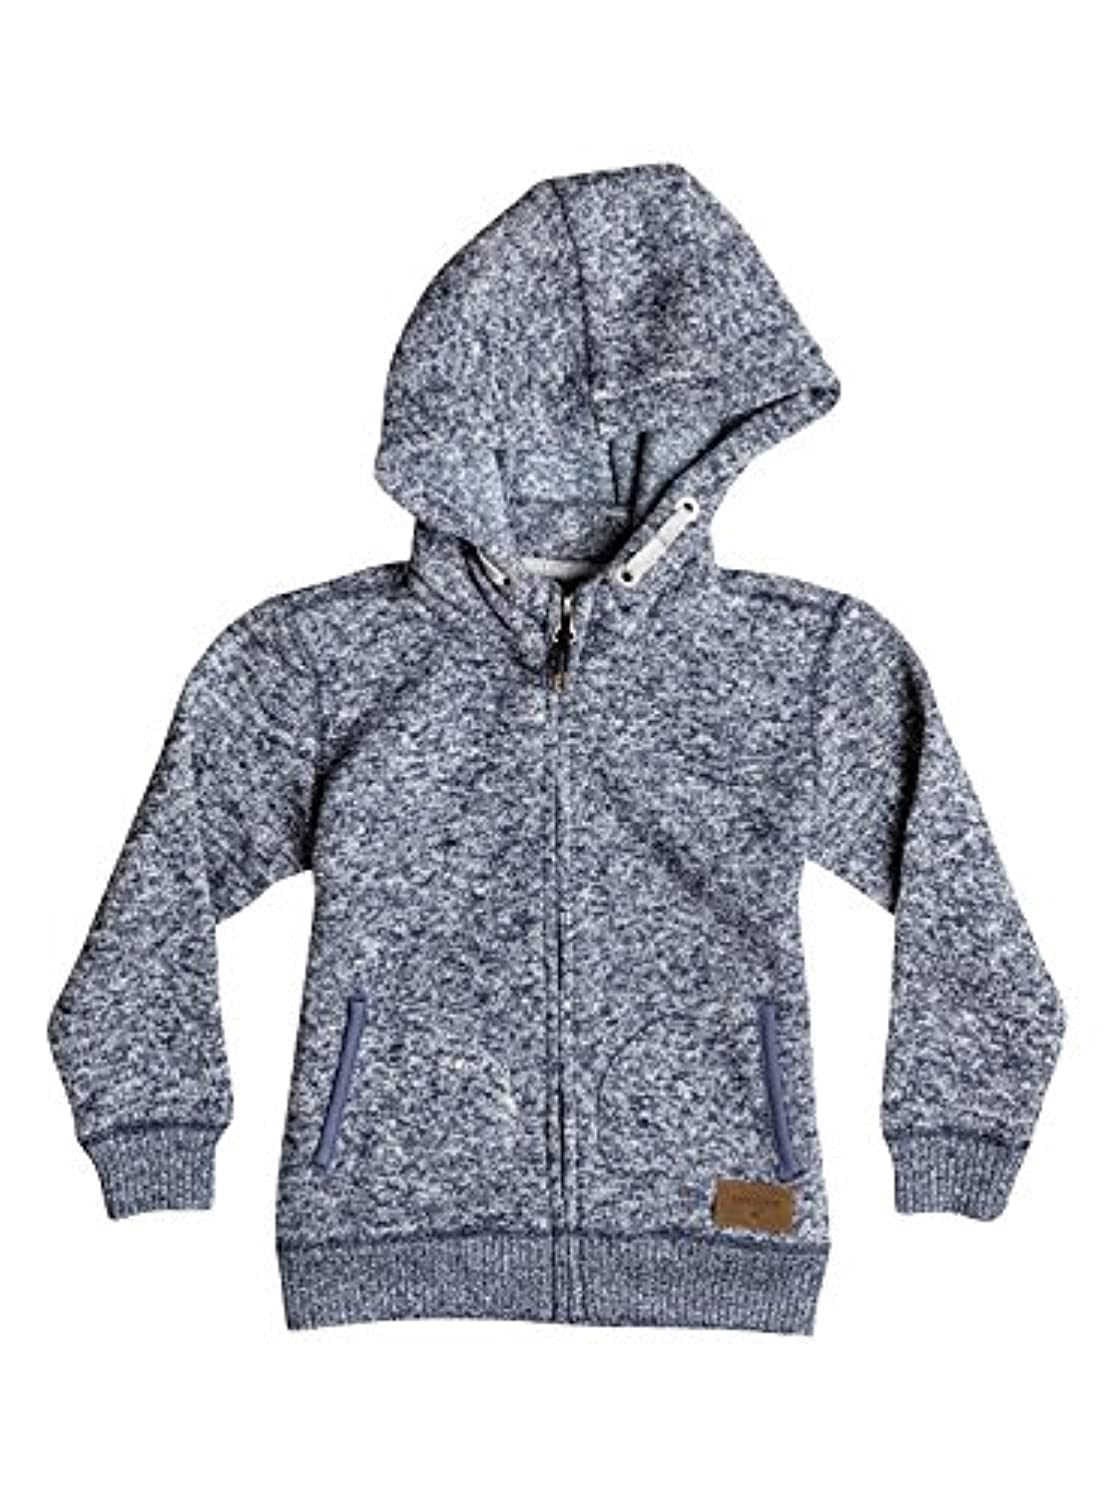 Quiksilver OUTERWEAR ボーイズ